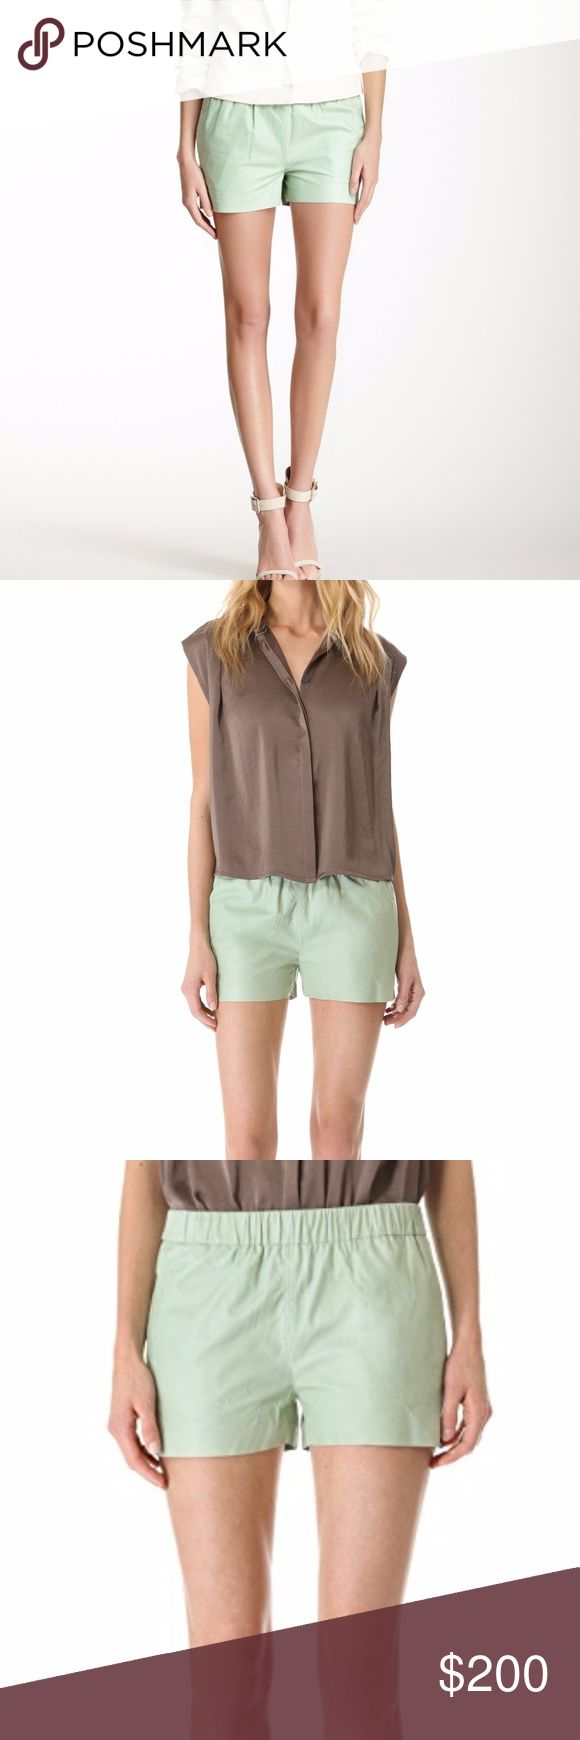 J Brand Lynn Lambskin Leather Shorts Small NWT J Brand Lynn Lambskin Leather Raw Hem Shorts.  Brand new with tags. Size: Small - Color: Foam (light, mint green color). - Soft and supple lambskin leather, - Elasticized waist, - On-seam side pockets, - Small slits at side hems, - Shell: Dyed Lambskin Leather; Pocket Lining. J Brand Shorts